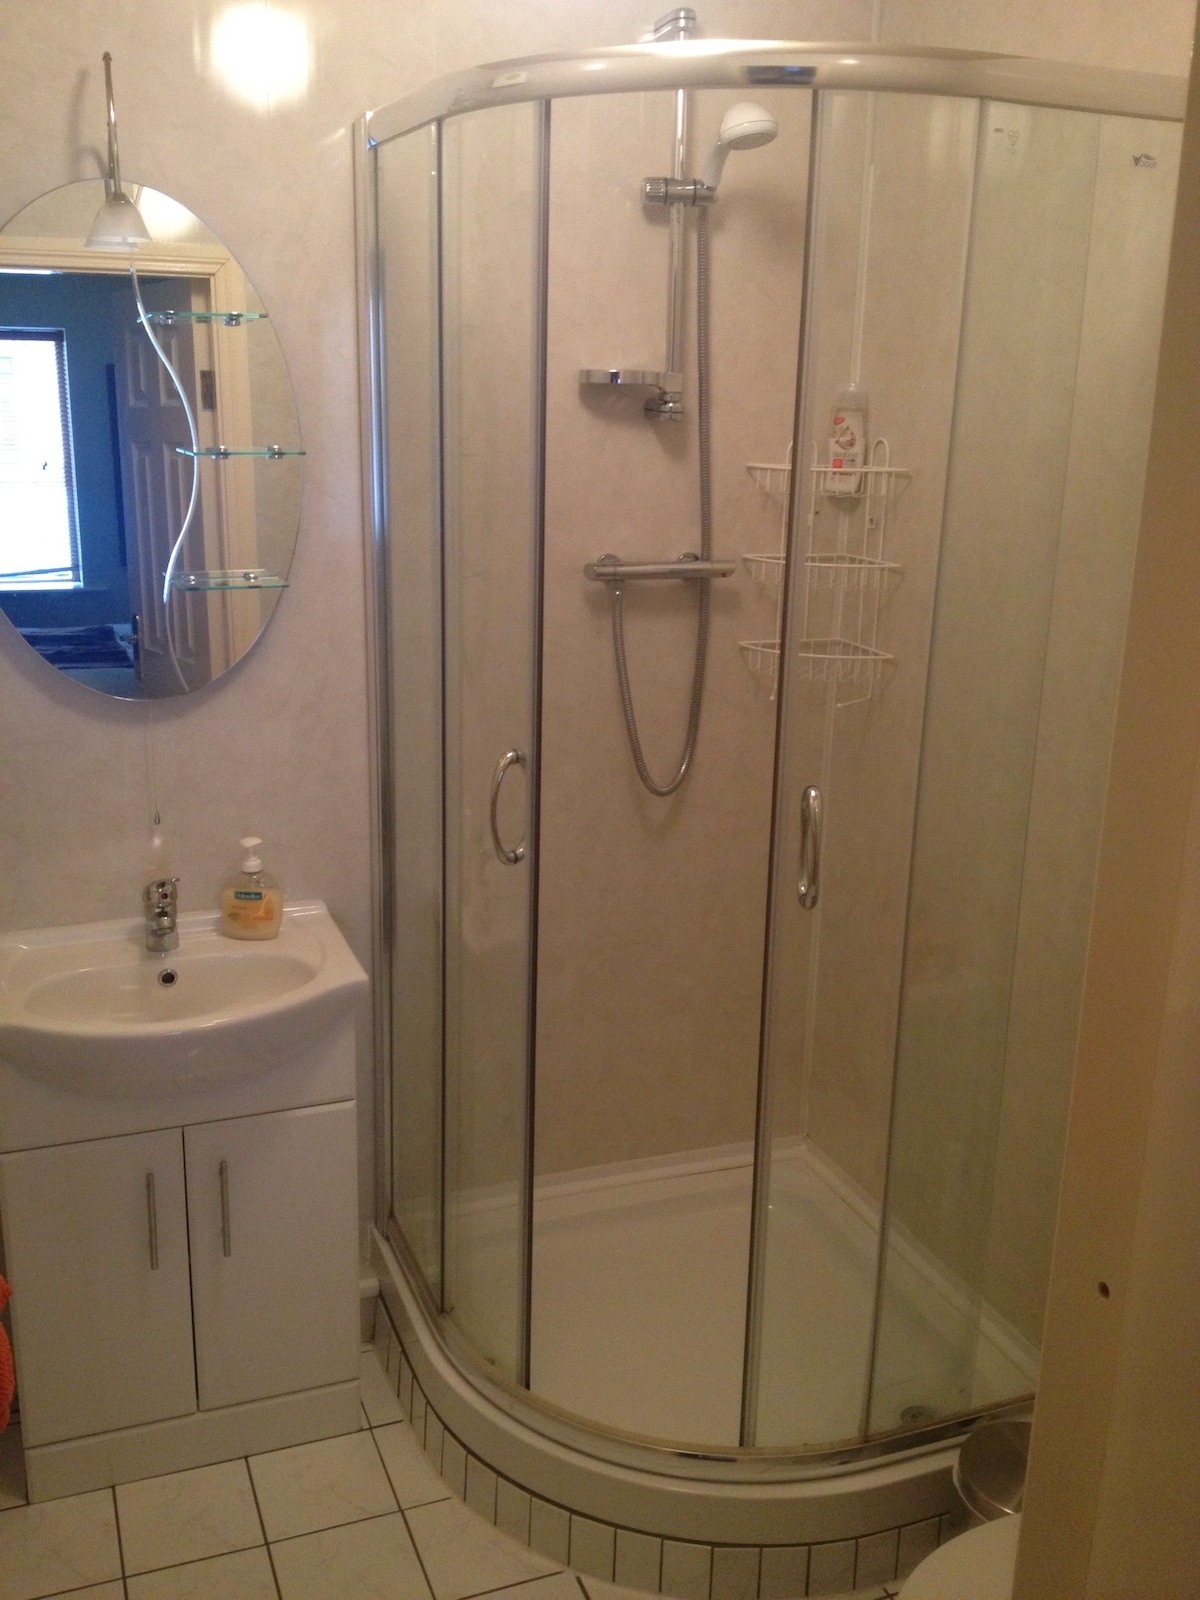 Ensuite bathroom with new fittings